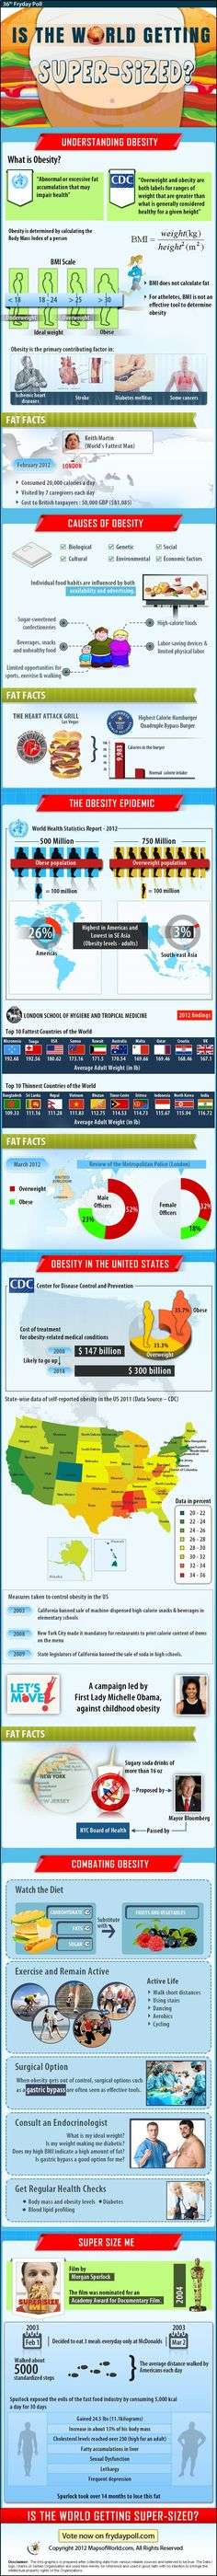 Find In-depth Review, Video And Infographic OnFind In-depth Review, Video And Infographic On Obesity. Learn more about causes of obesity, fat facts, body mass index, global statistics, obesity in united states and tips to combat obesity. and more.